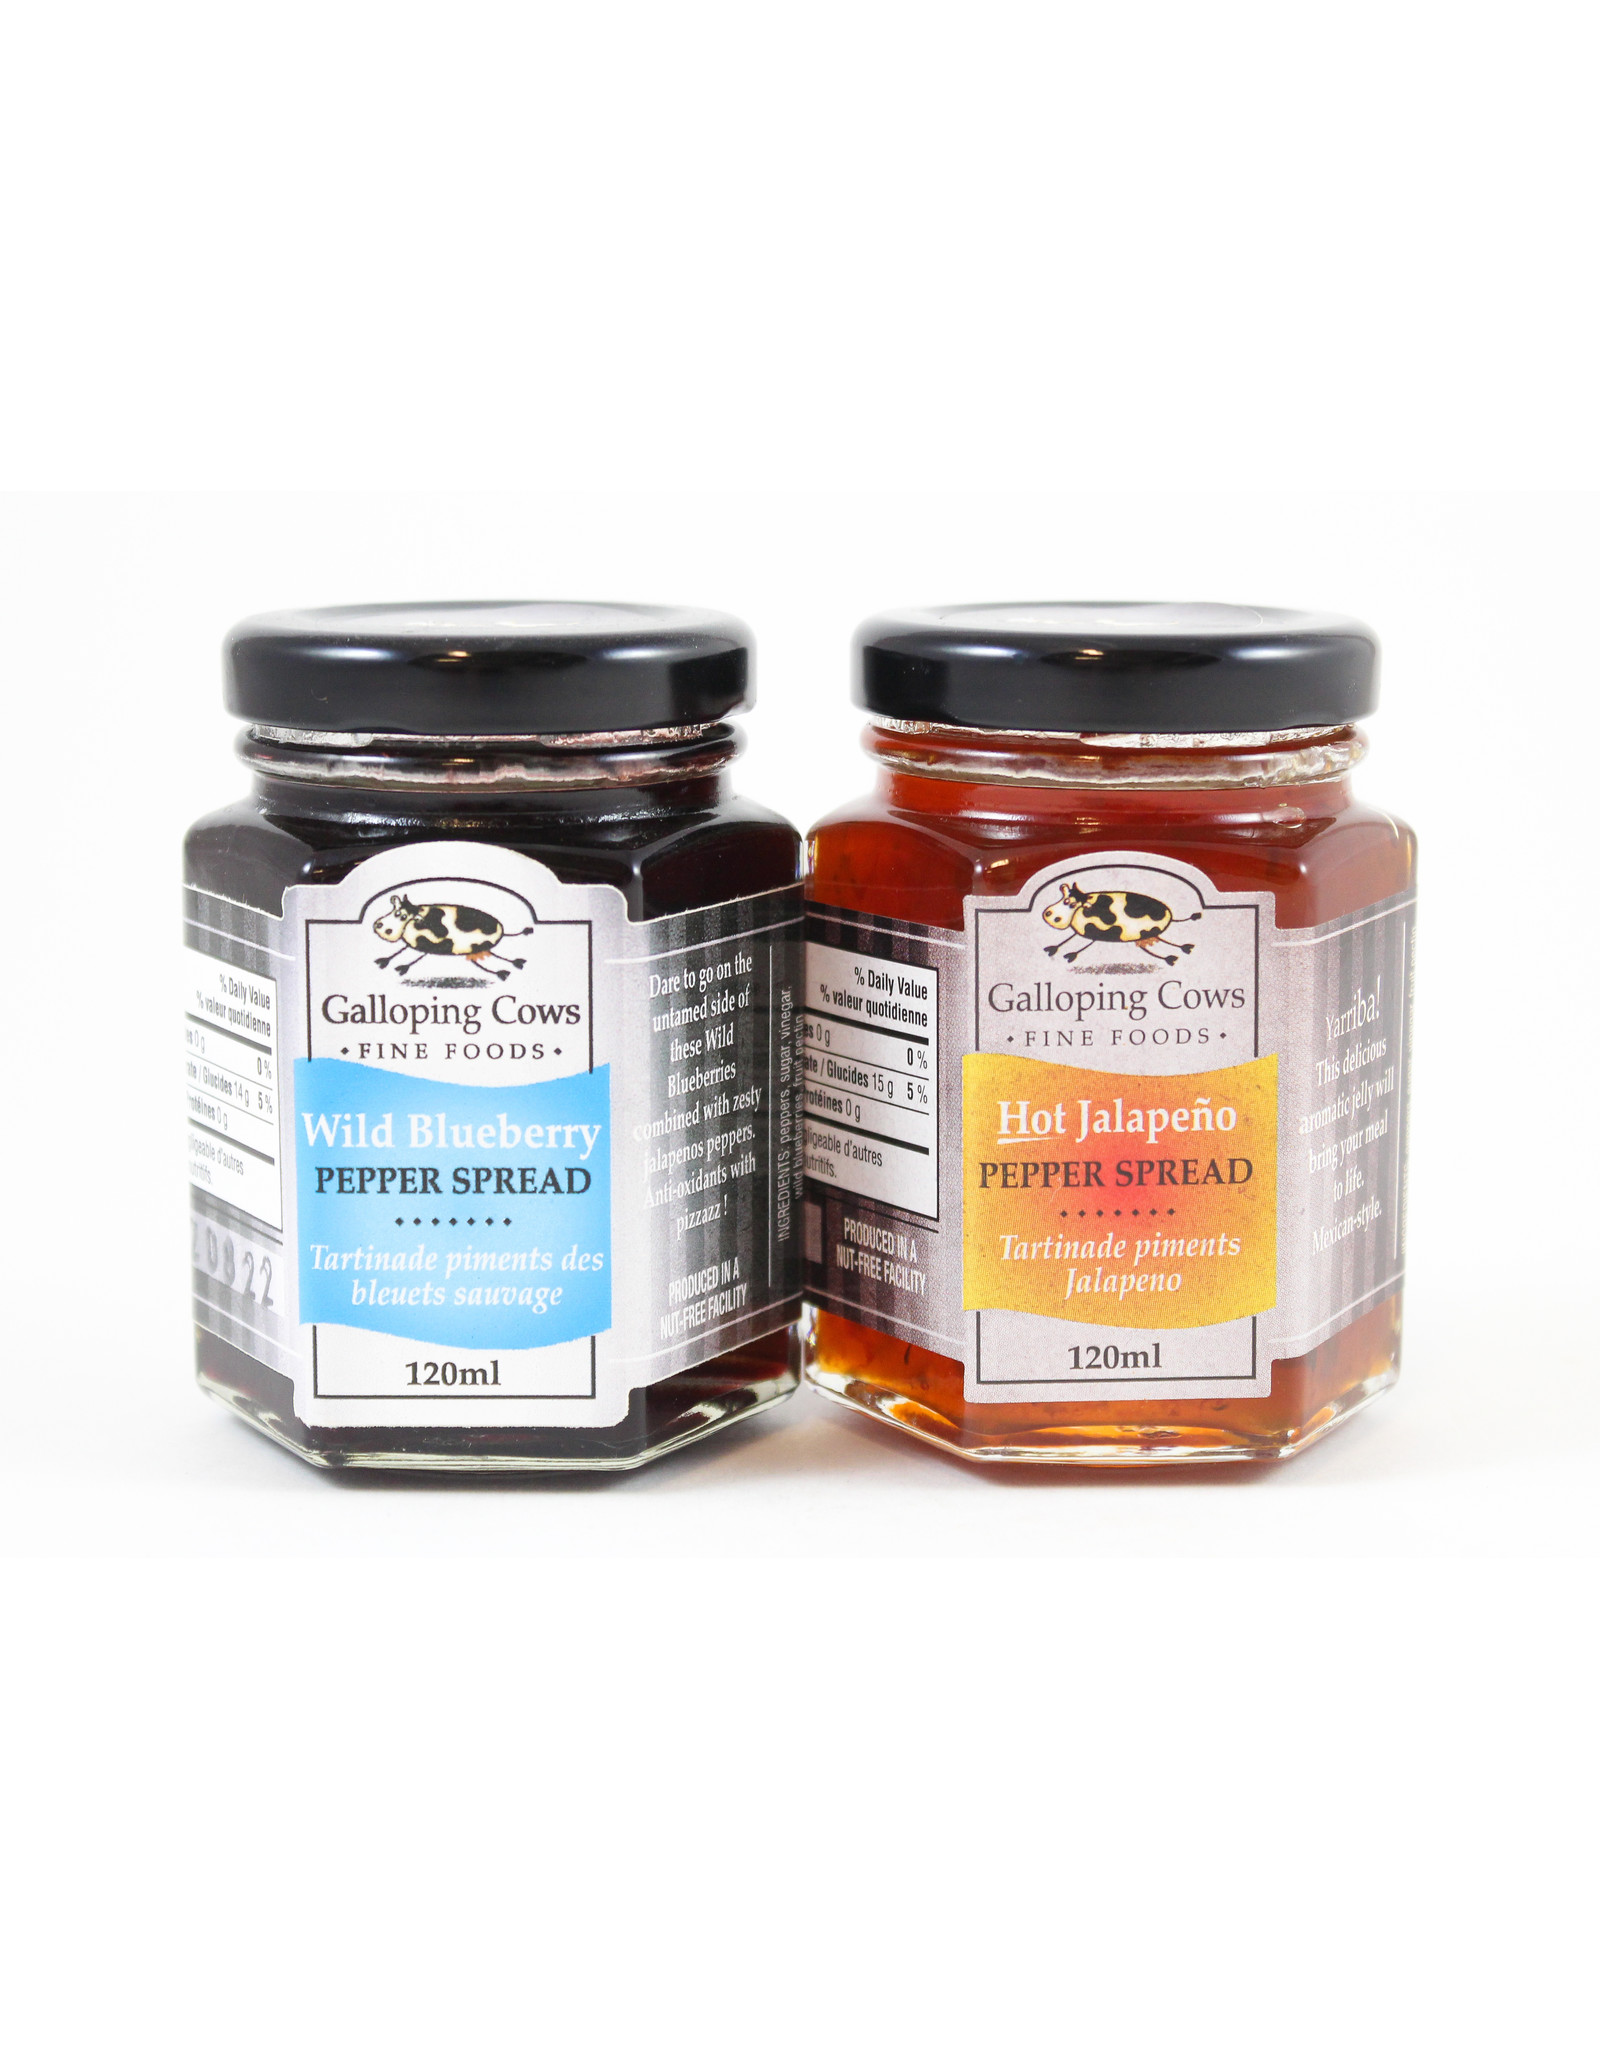 Galloping Cows 120ml Spreads by Galloping Cows